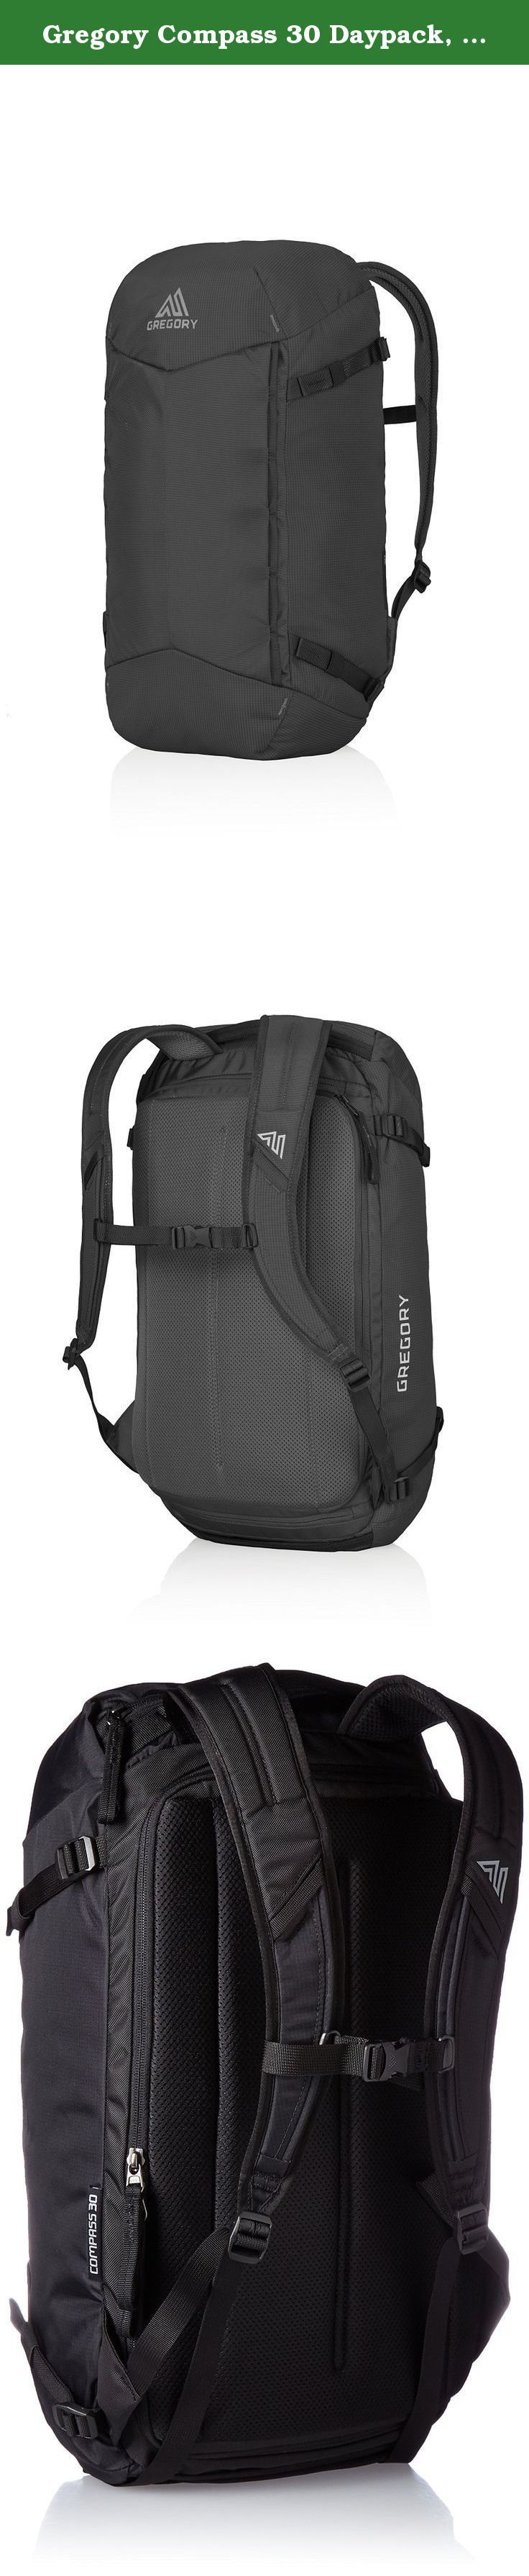 Gregory Compass 30 Daypack, True Black, One Size. The Compass 30's compact profile and trail-ready ergonomic shoulder harness give it all the capabilities of an outdoor daypack, quick access, organization, panel access and padded laptop sleeve make it a business-savvy office assistant. Its 30-liter capacity offers more than enough space for lunch, gym wear, and a fresh change of clothes.